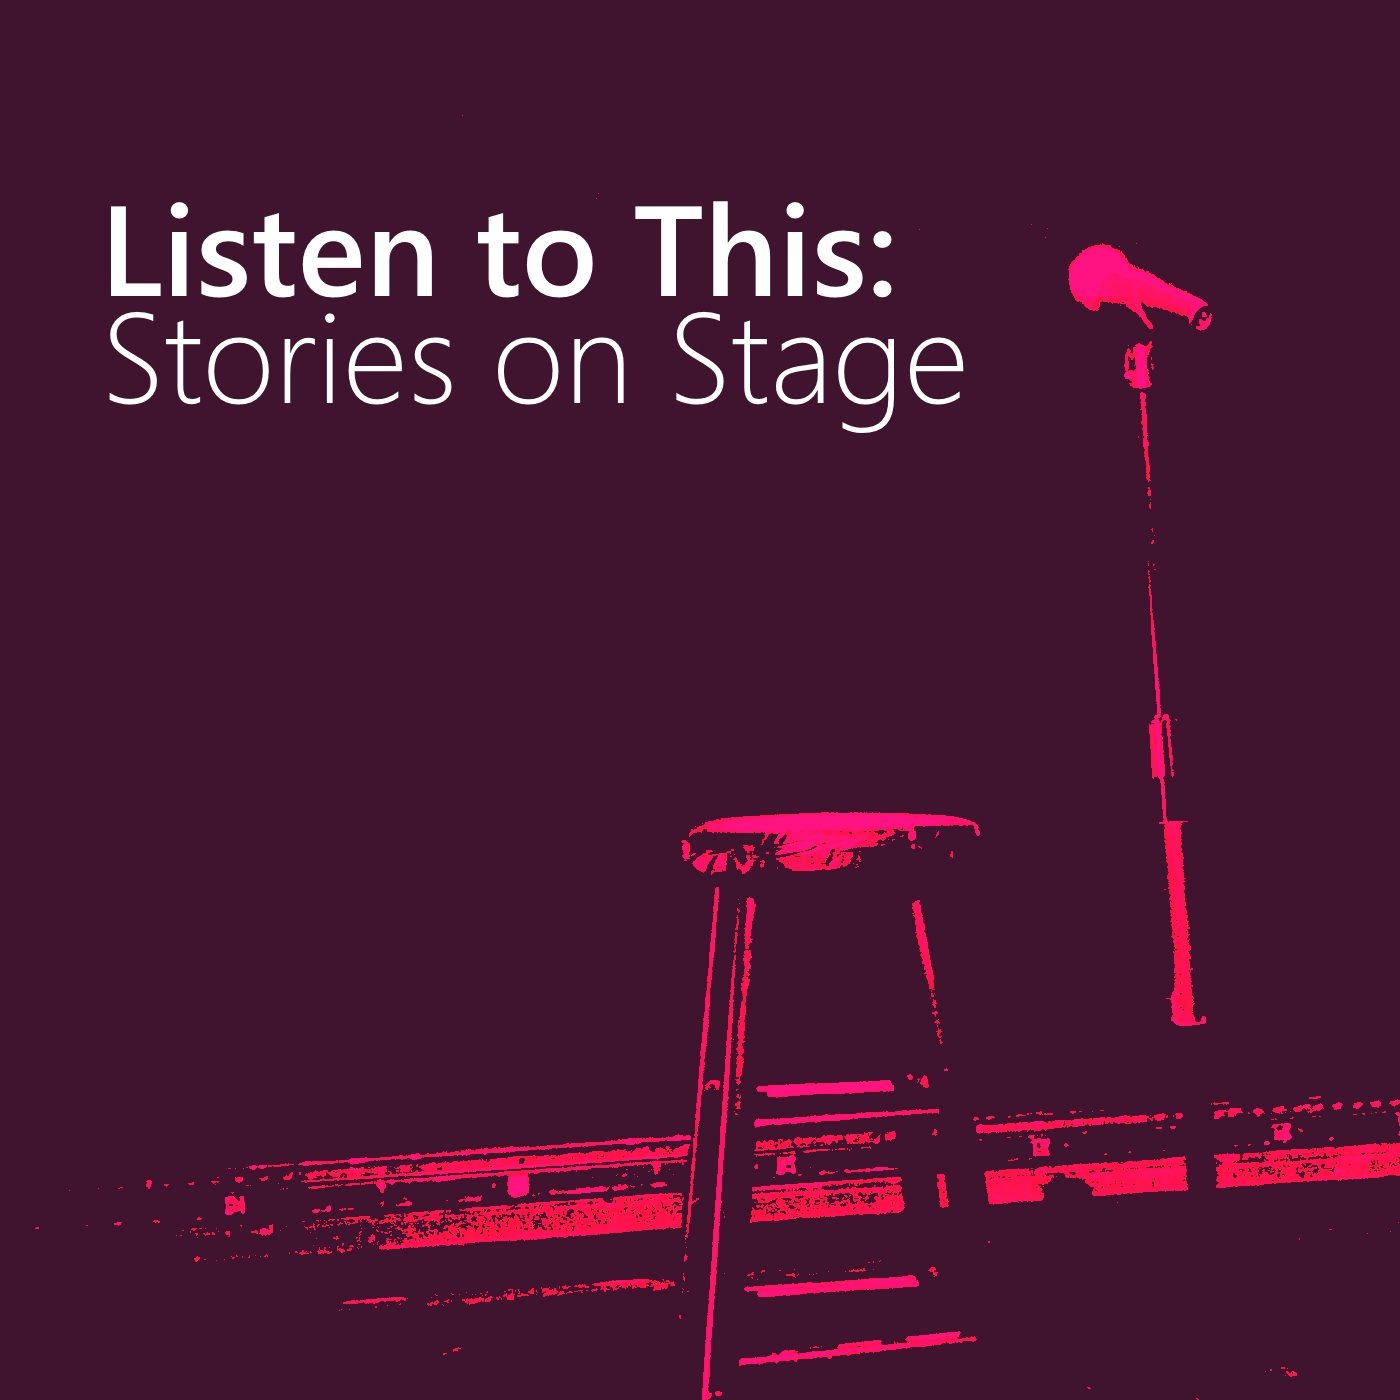 Listen to This: Stories on Stage